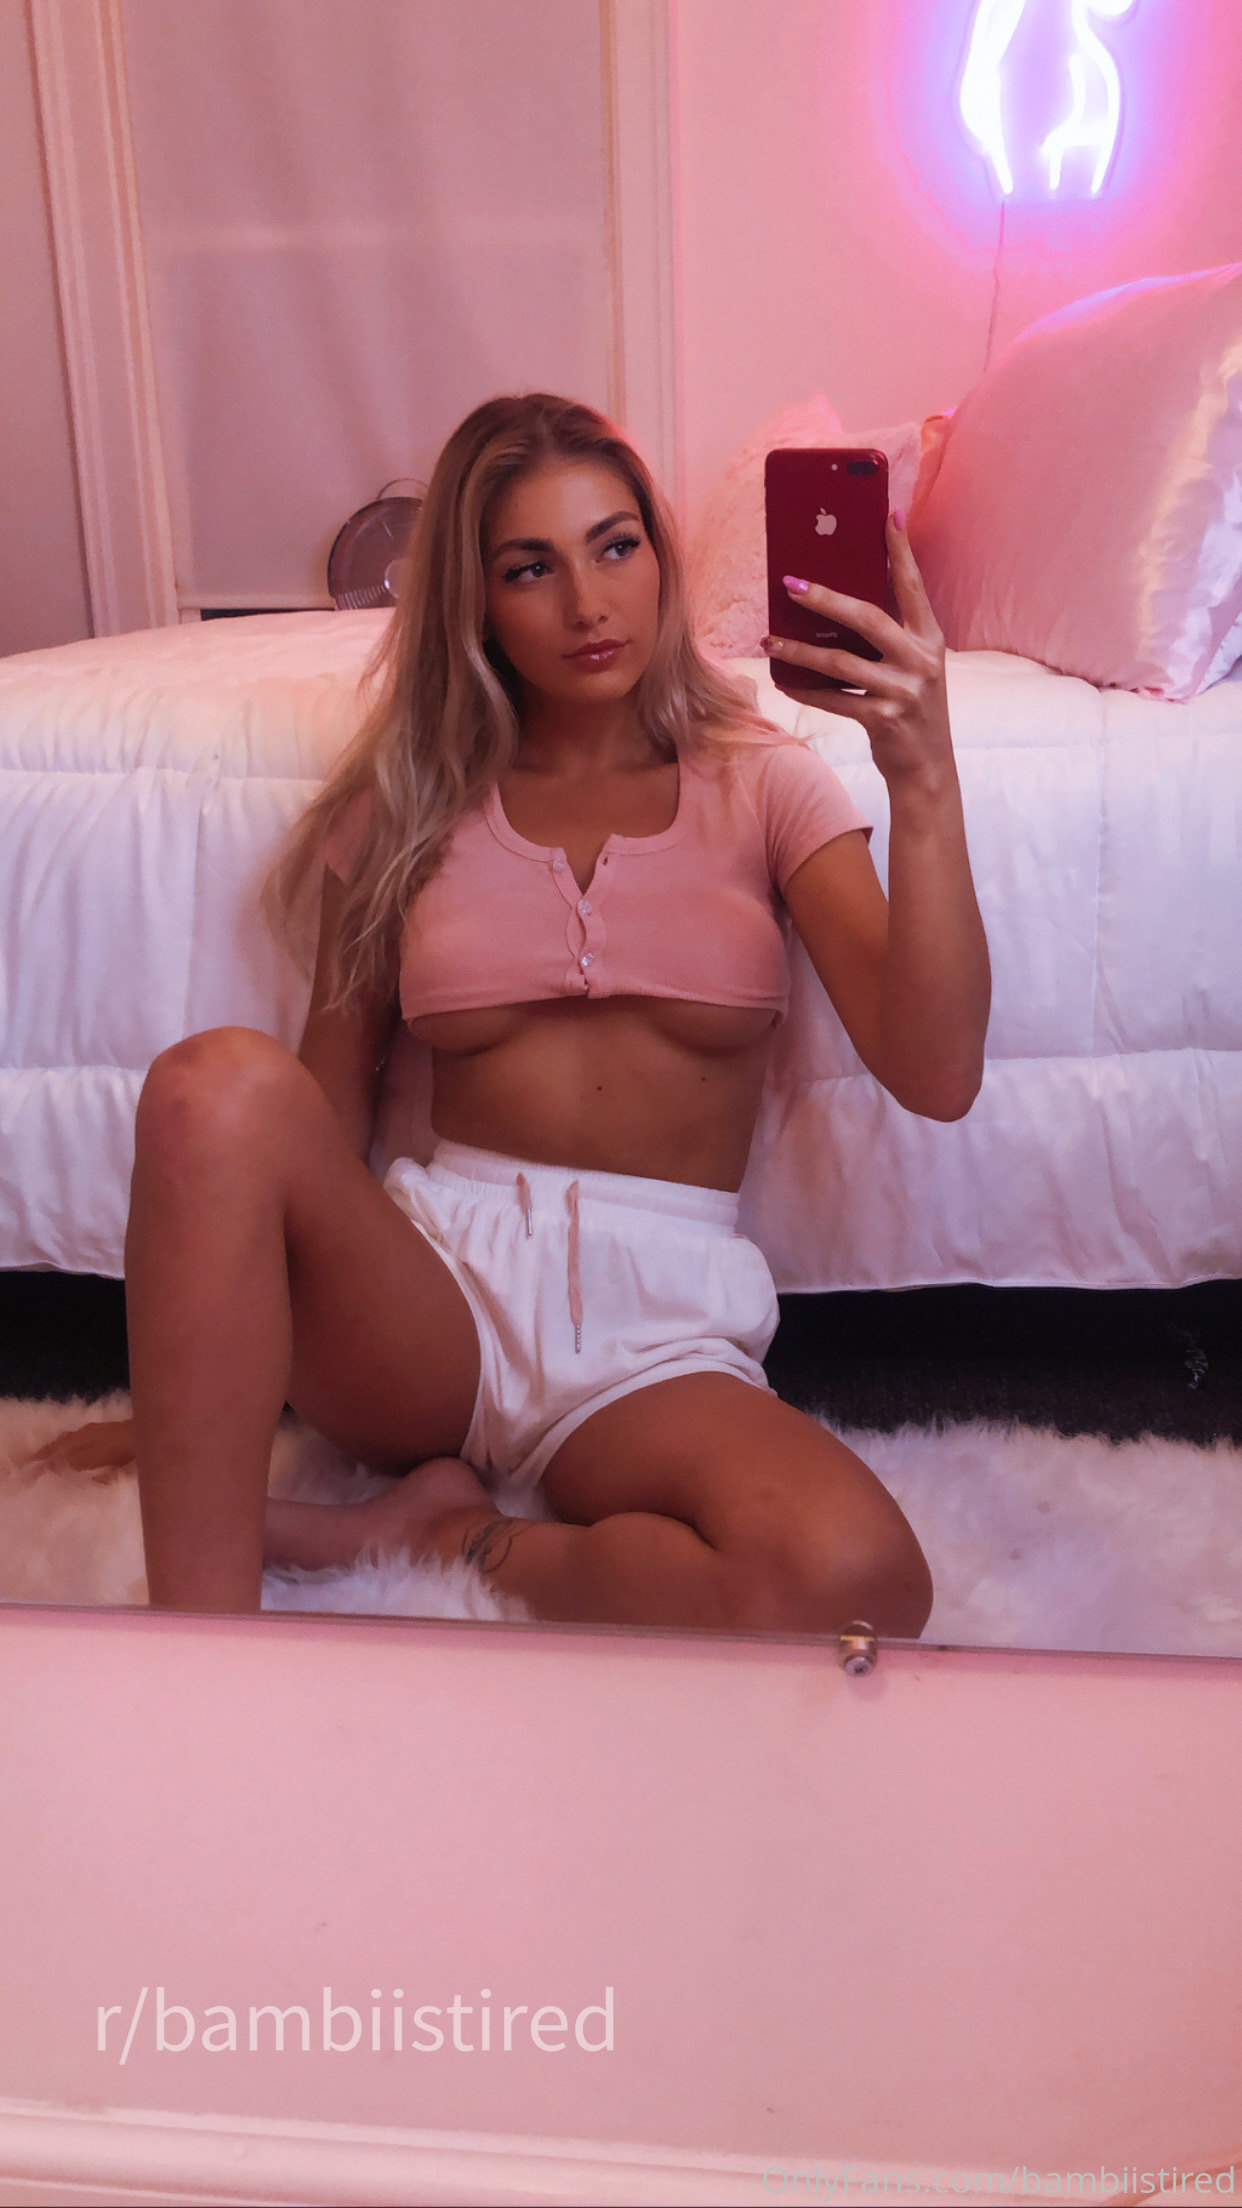 Bambiistired Onlyfans 0150